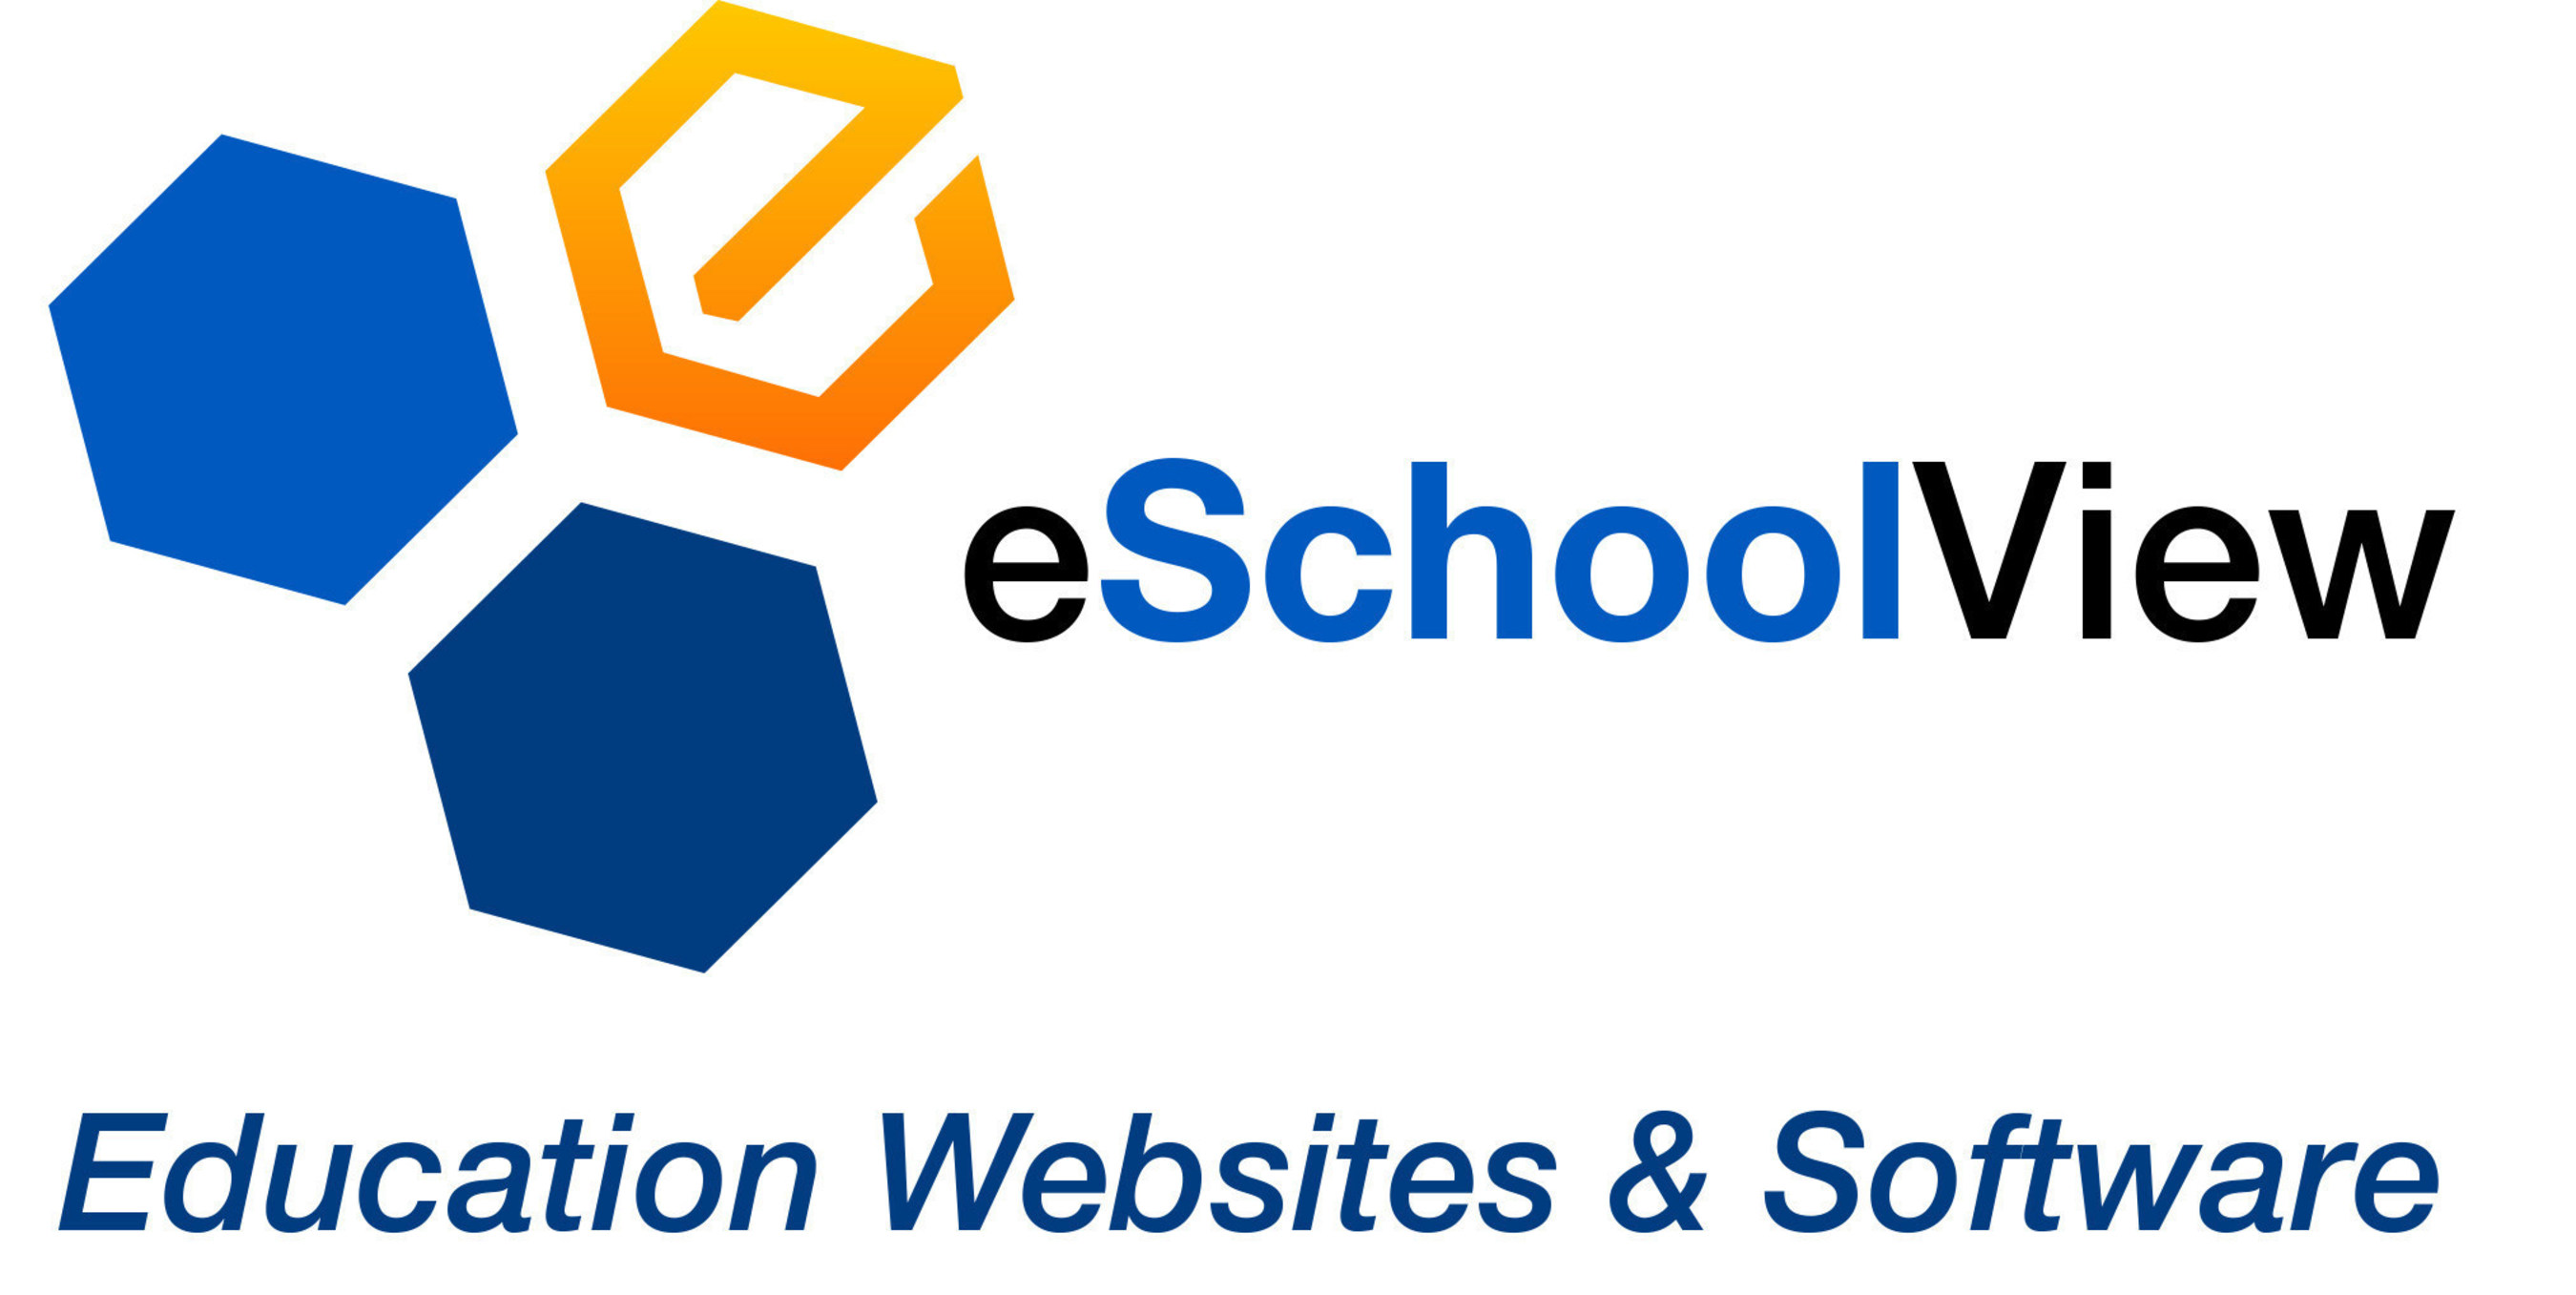 eSchoolView helps make world a little smaller for high school students